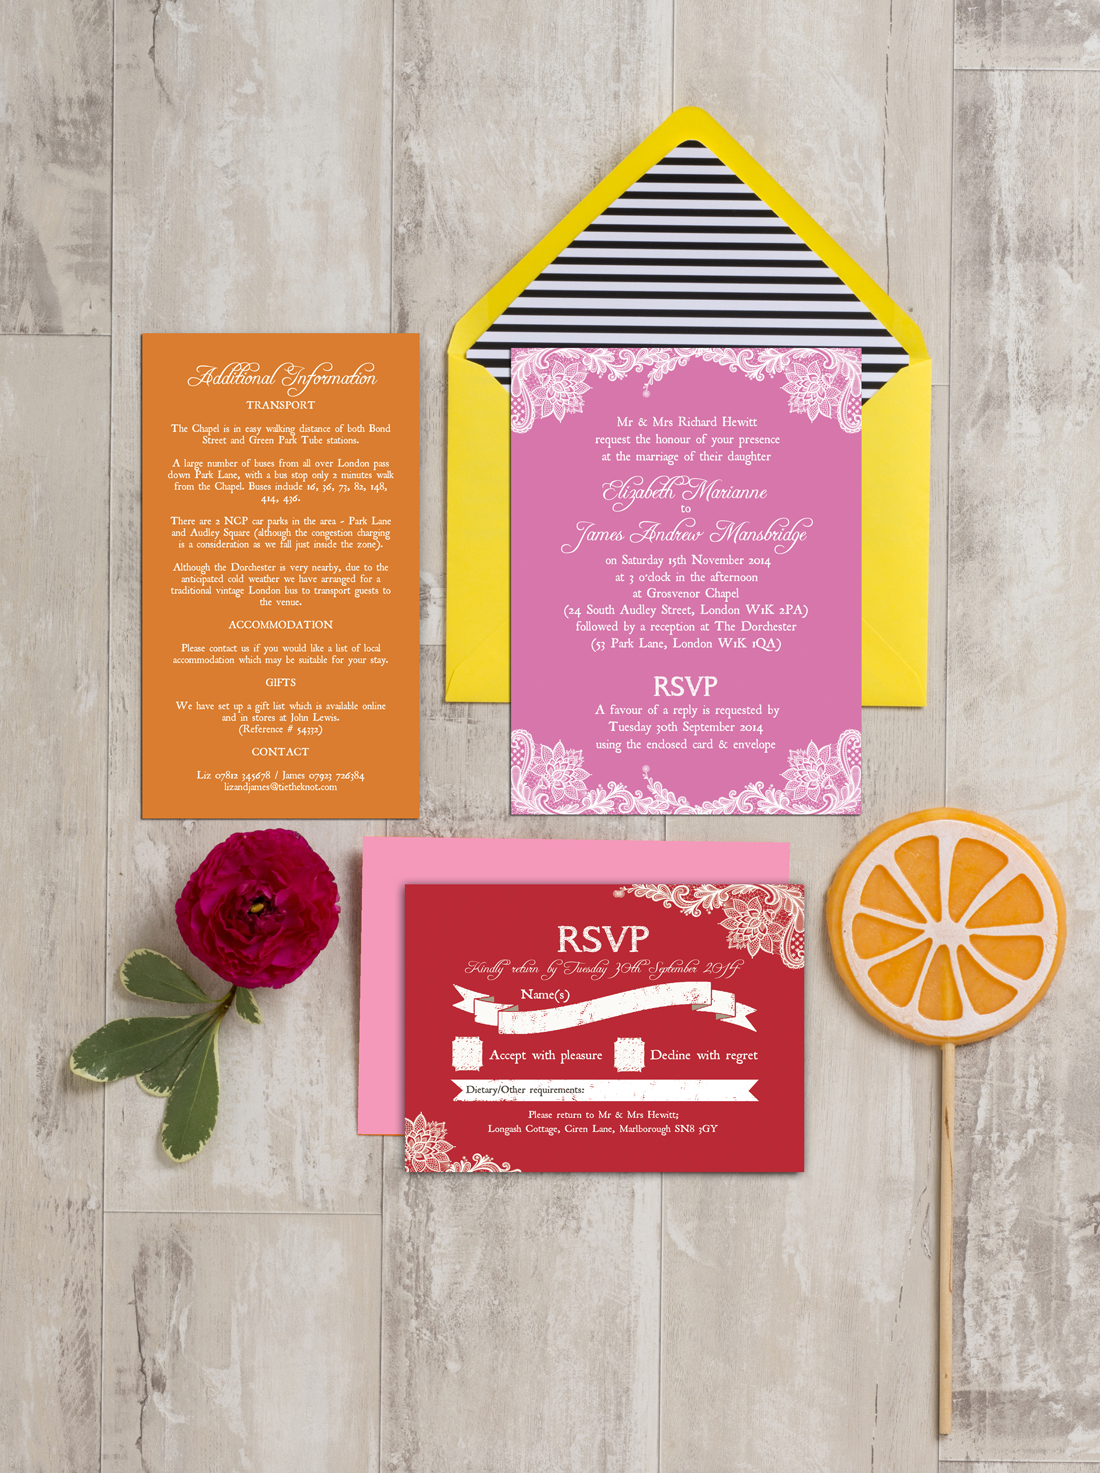 Wedding invitation wording etiquette advice please see this handy document for full examples of wedding invitation wording invitation wording examples for different family and wording scenarios ive stopboris Images